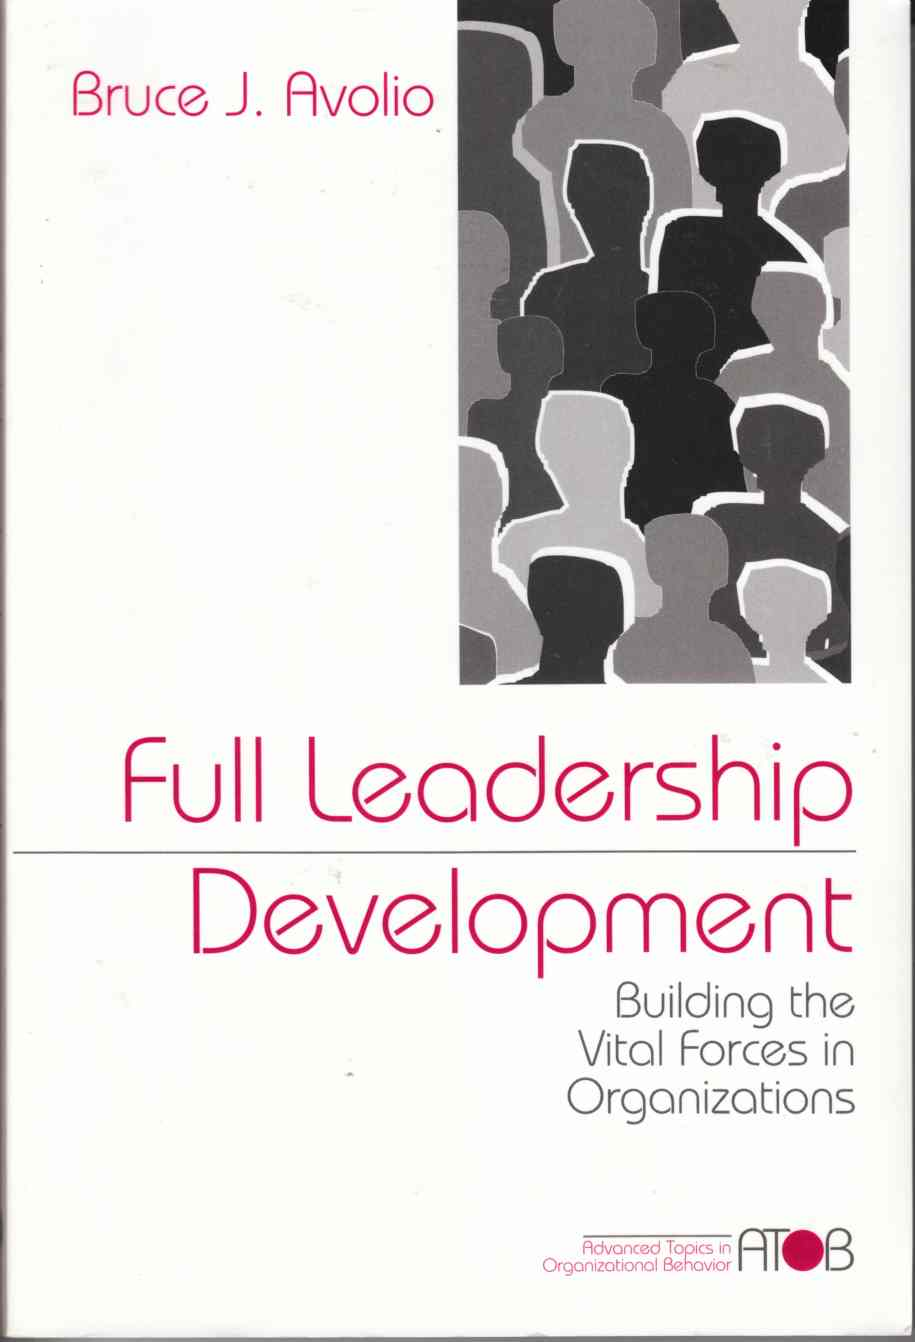 Image for Full Leadership Development Building Vital Forces in Organizations